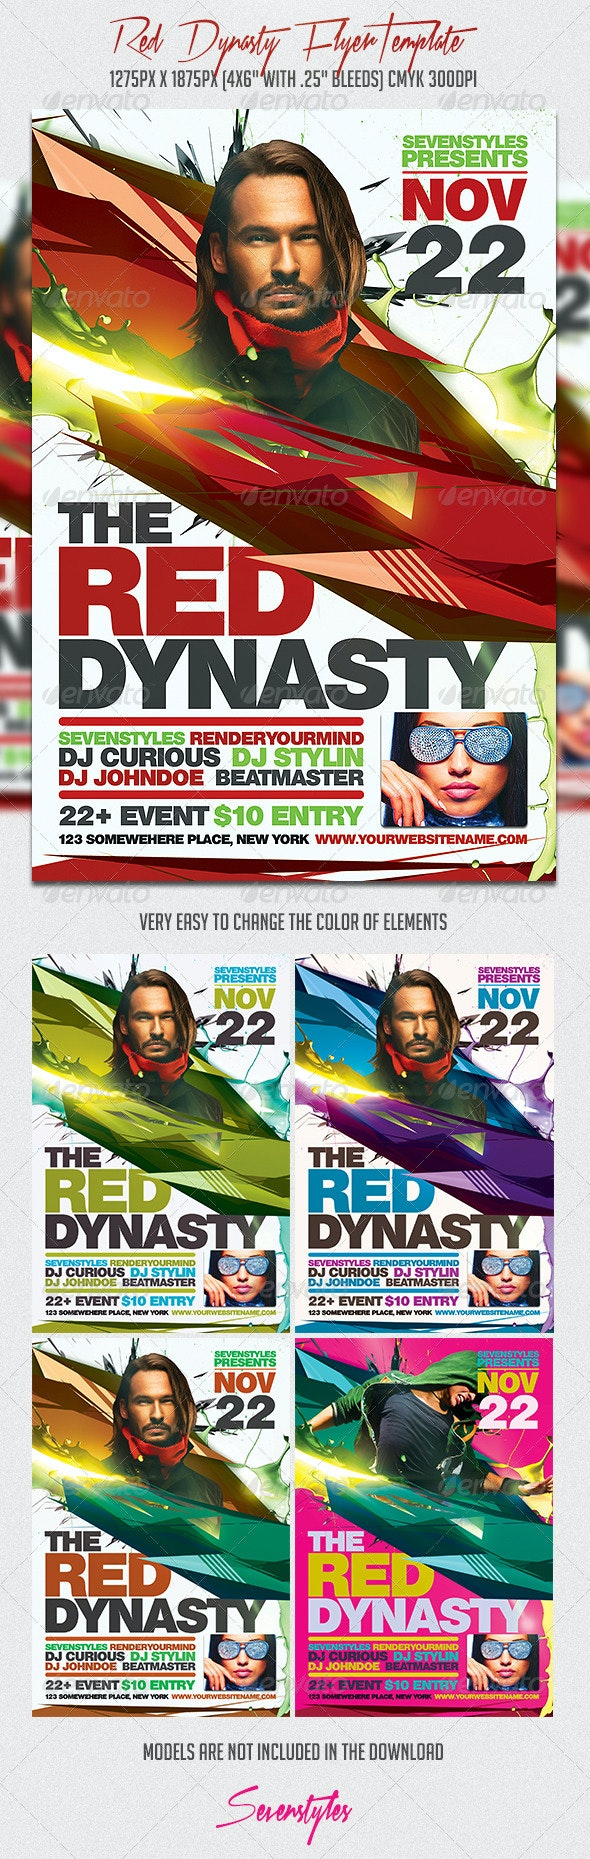 Red Dynasty Flyer Template - Flyers Print Templates